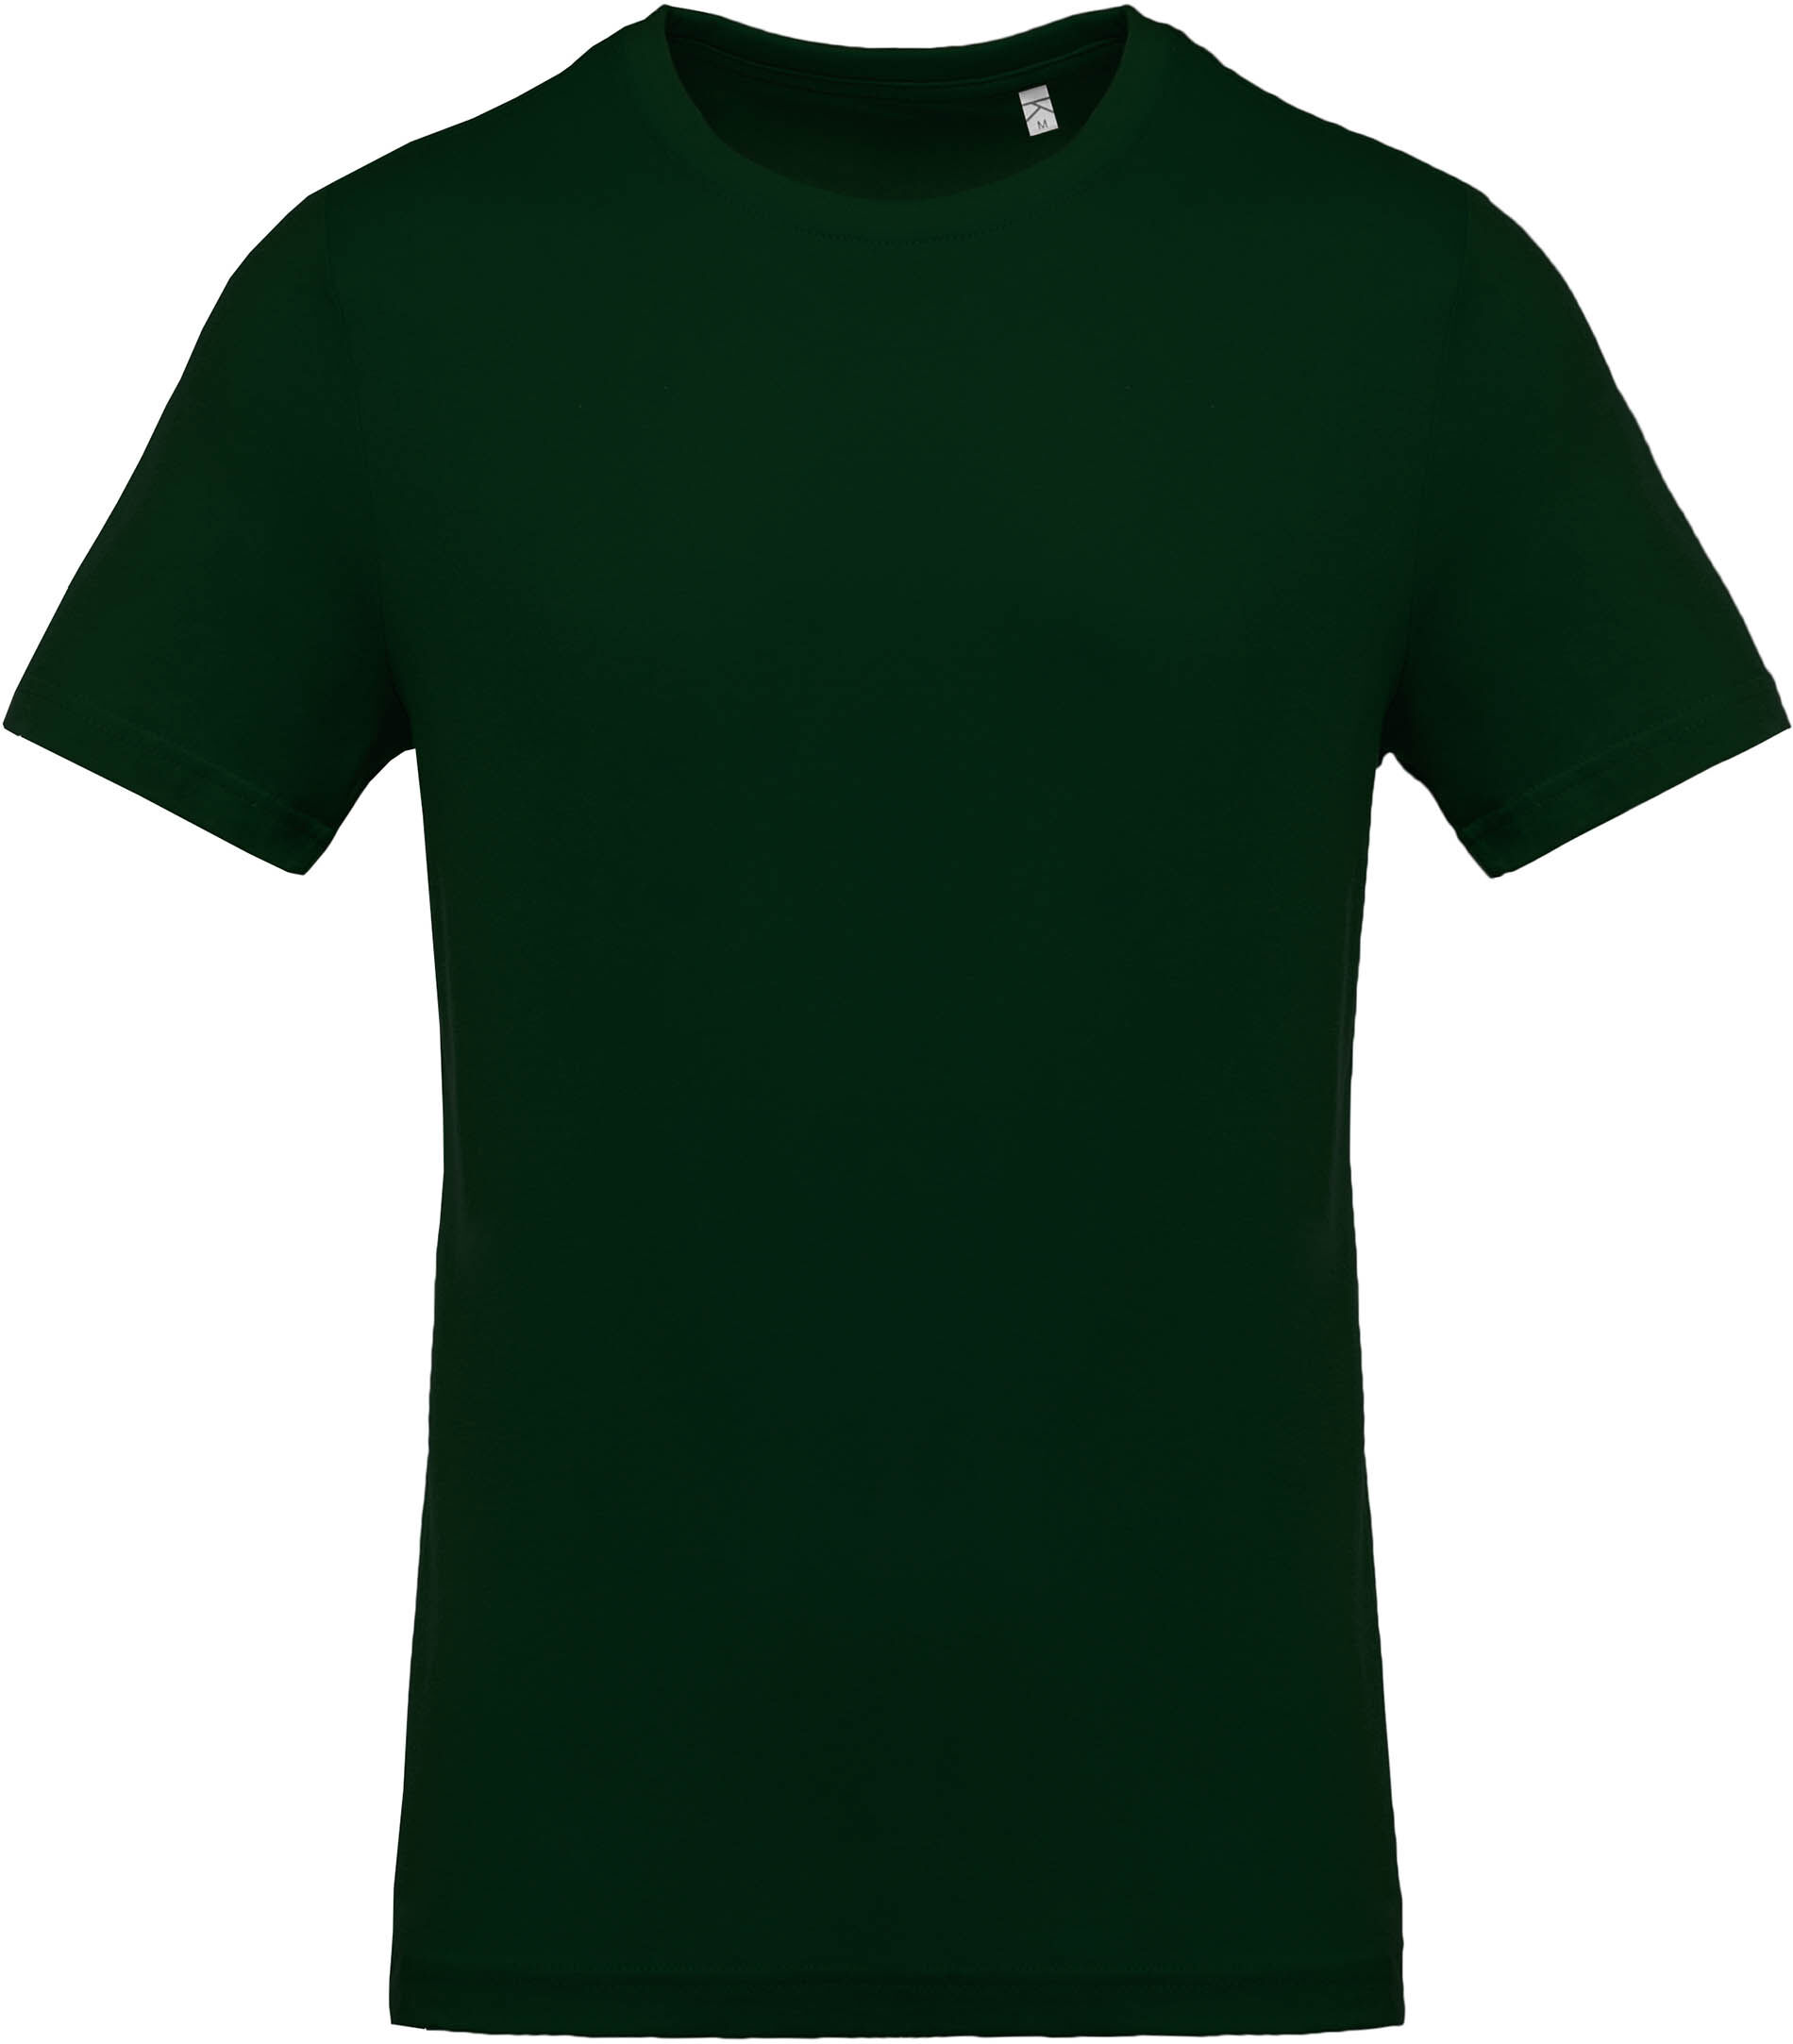 T shirt manches courtes col rond forest green kariban for Green mens t shirt